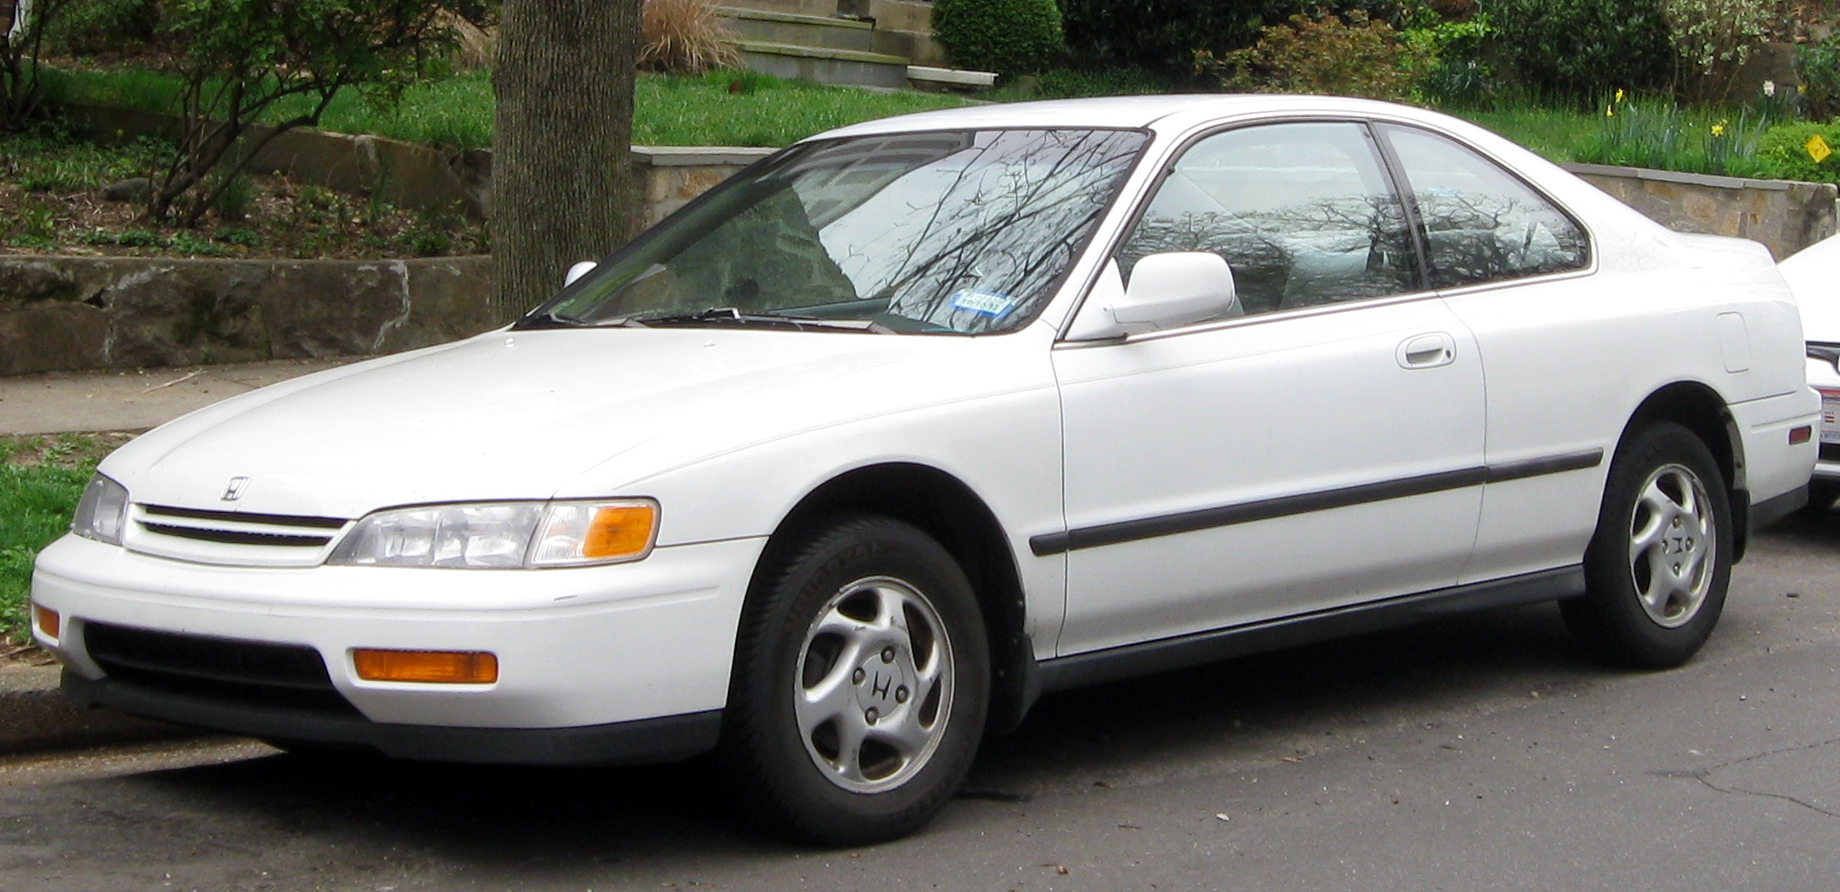 1994 honda accord information and photos zombiedrive. Black Bedroom Furniture Sets. Home Design Ideas